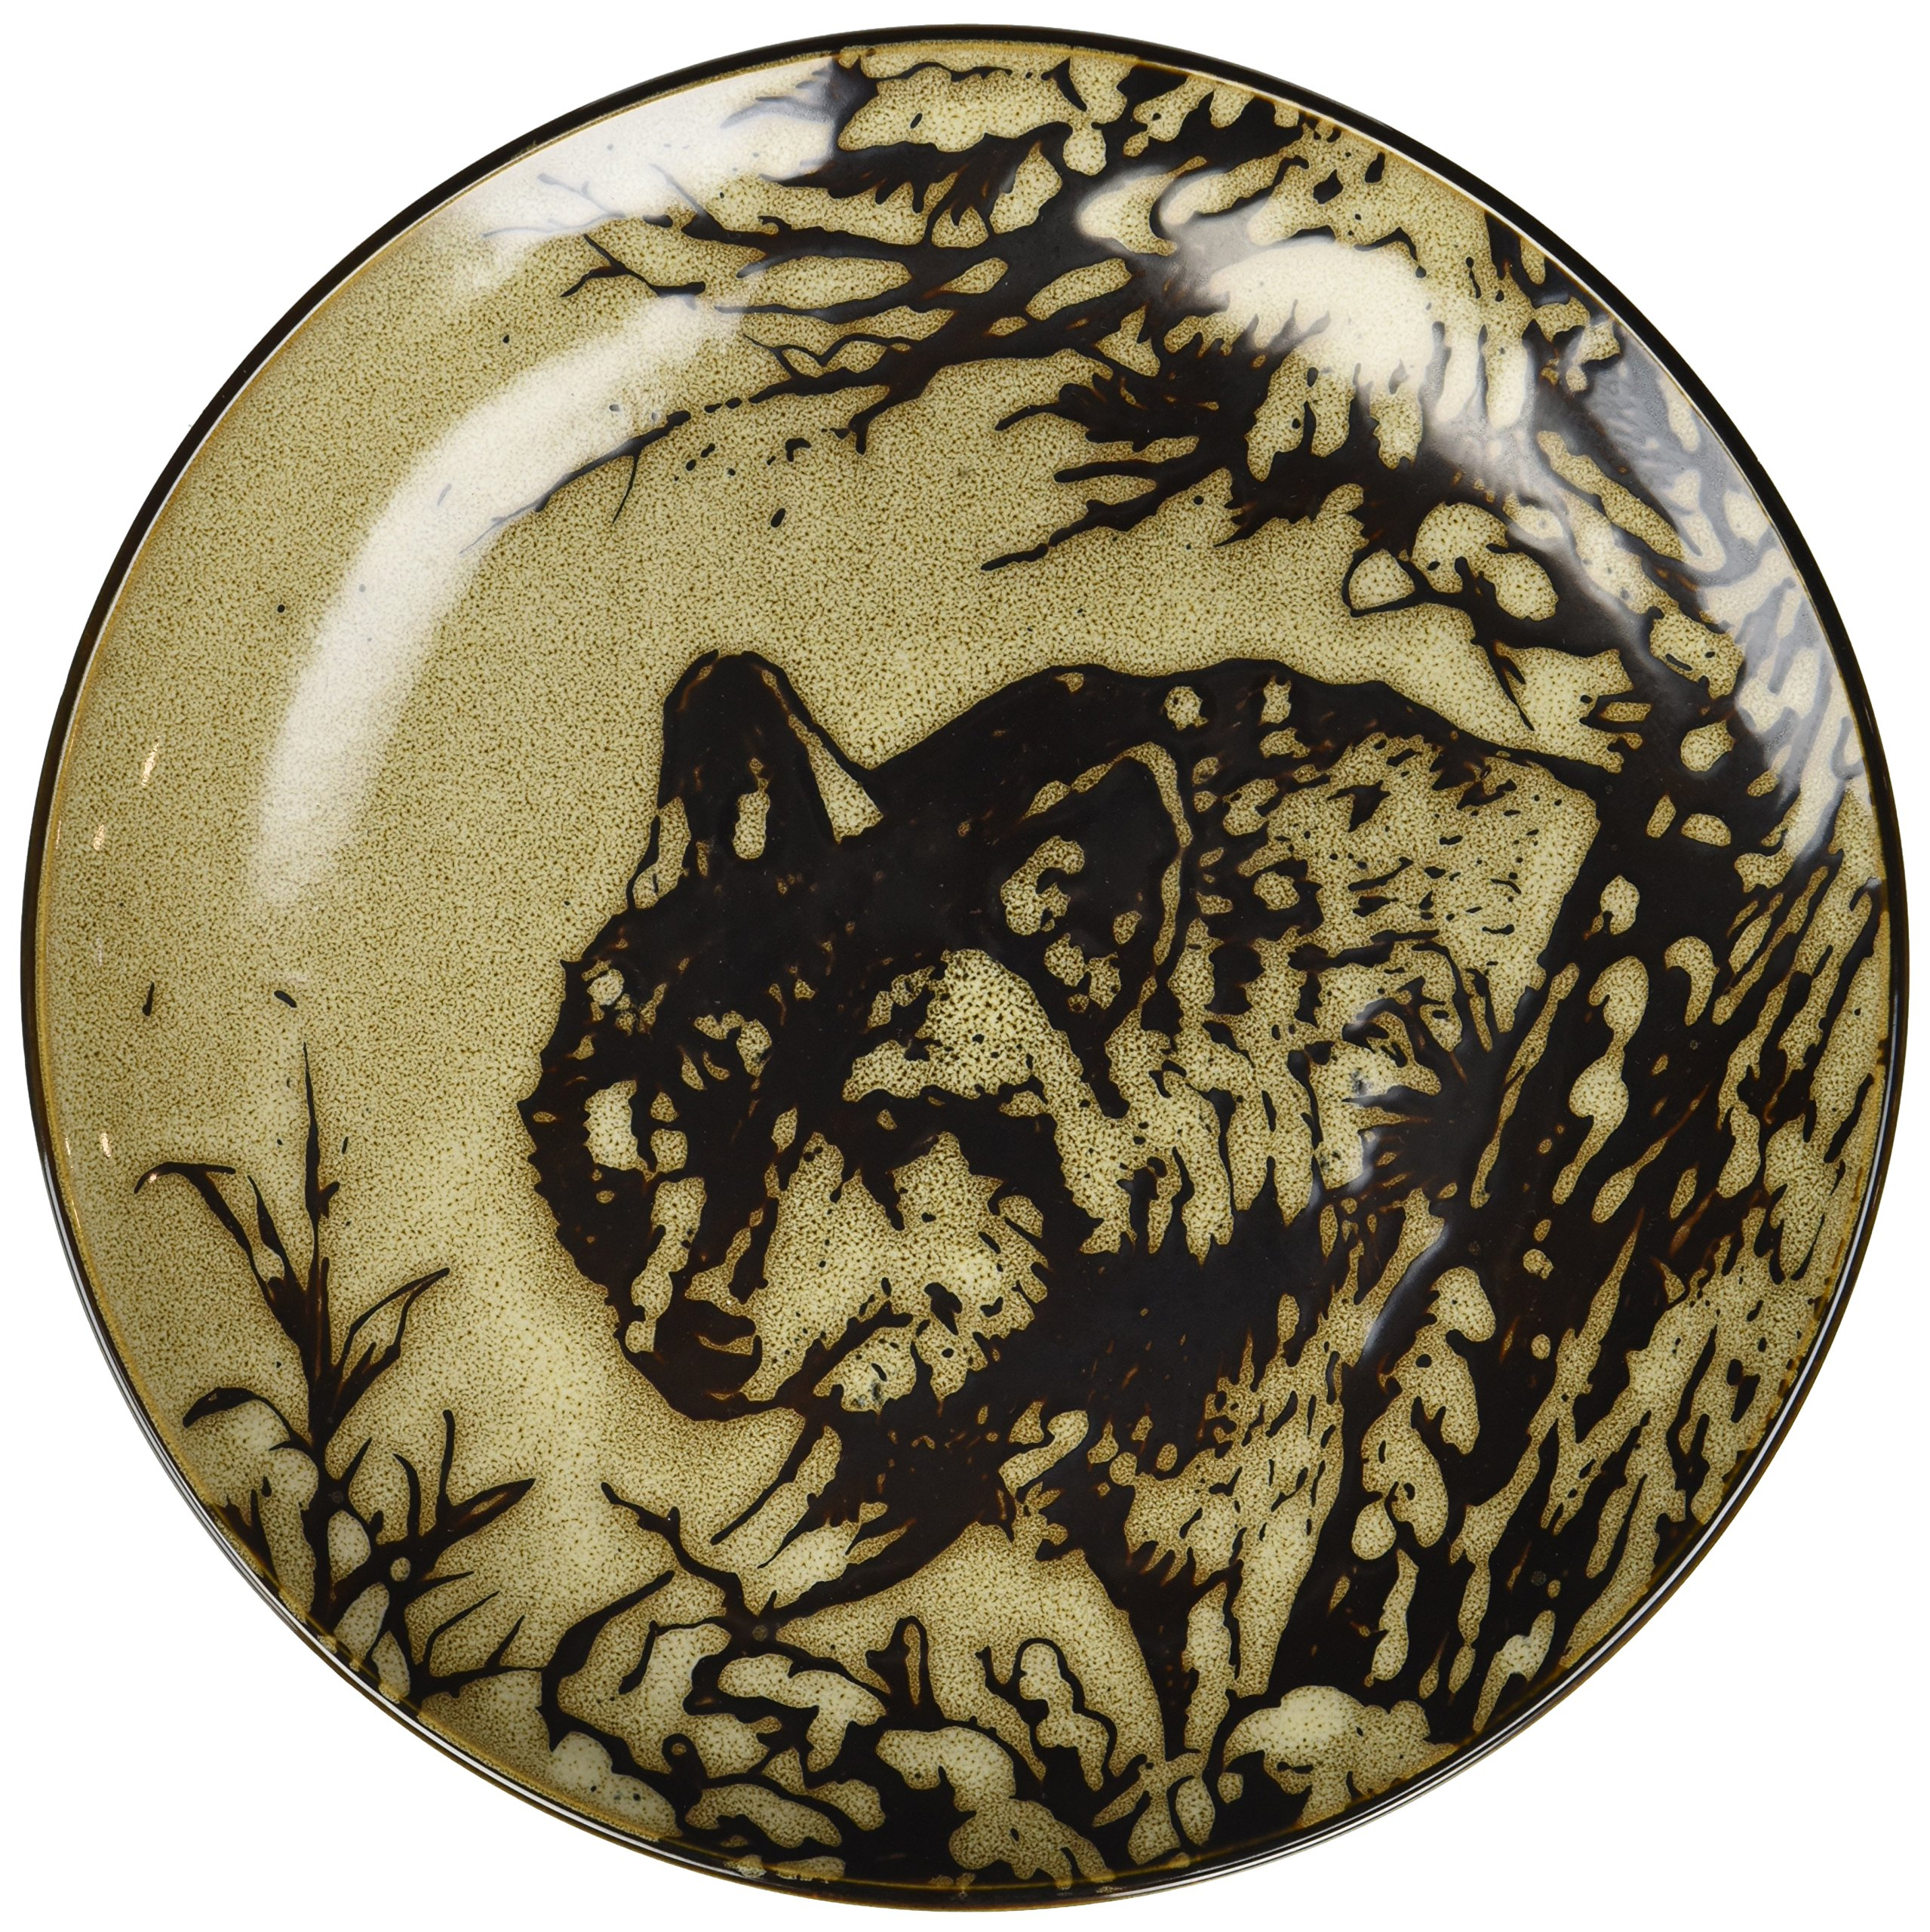 StealStreet SS-UG-TFC-717 Glazed North American Woodlands Design Plate Wolf, 8.25''